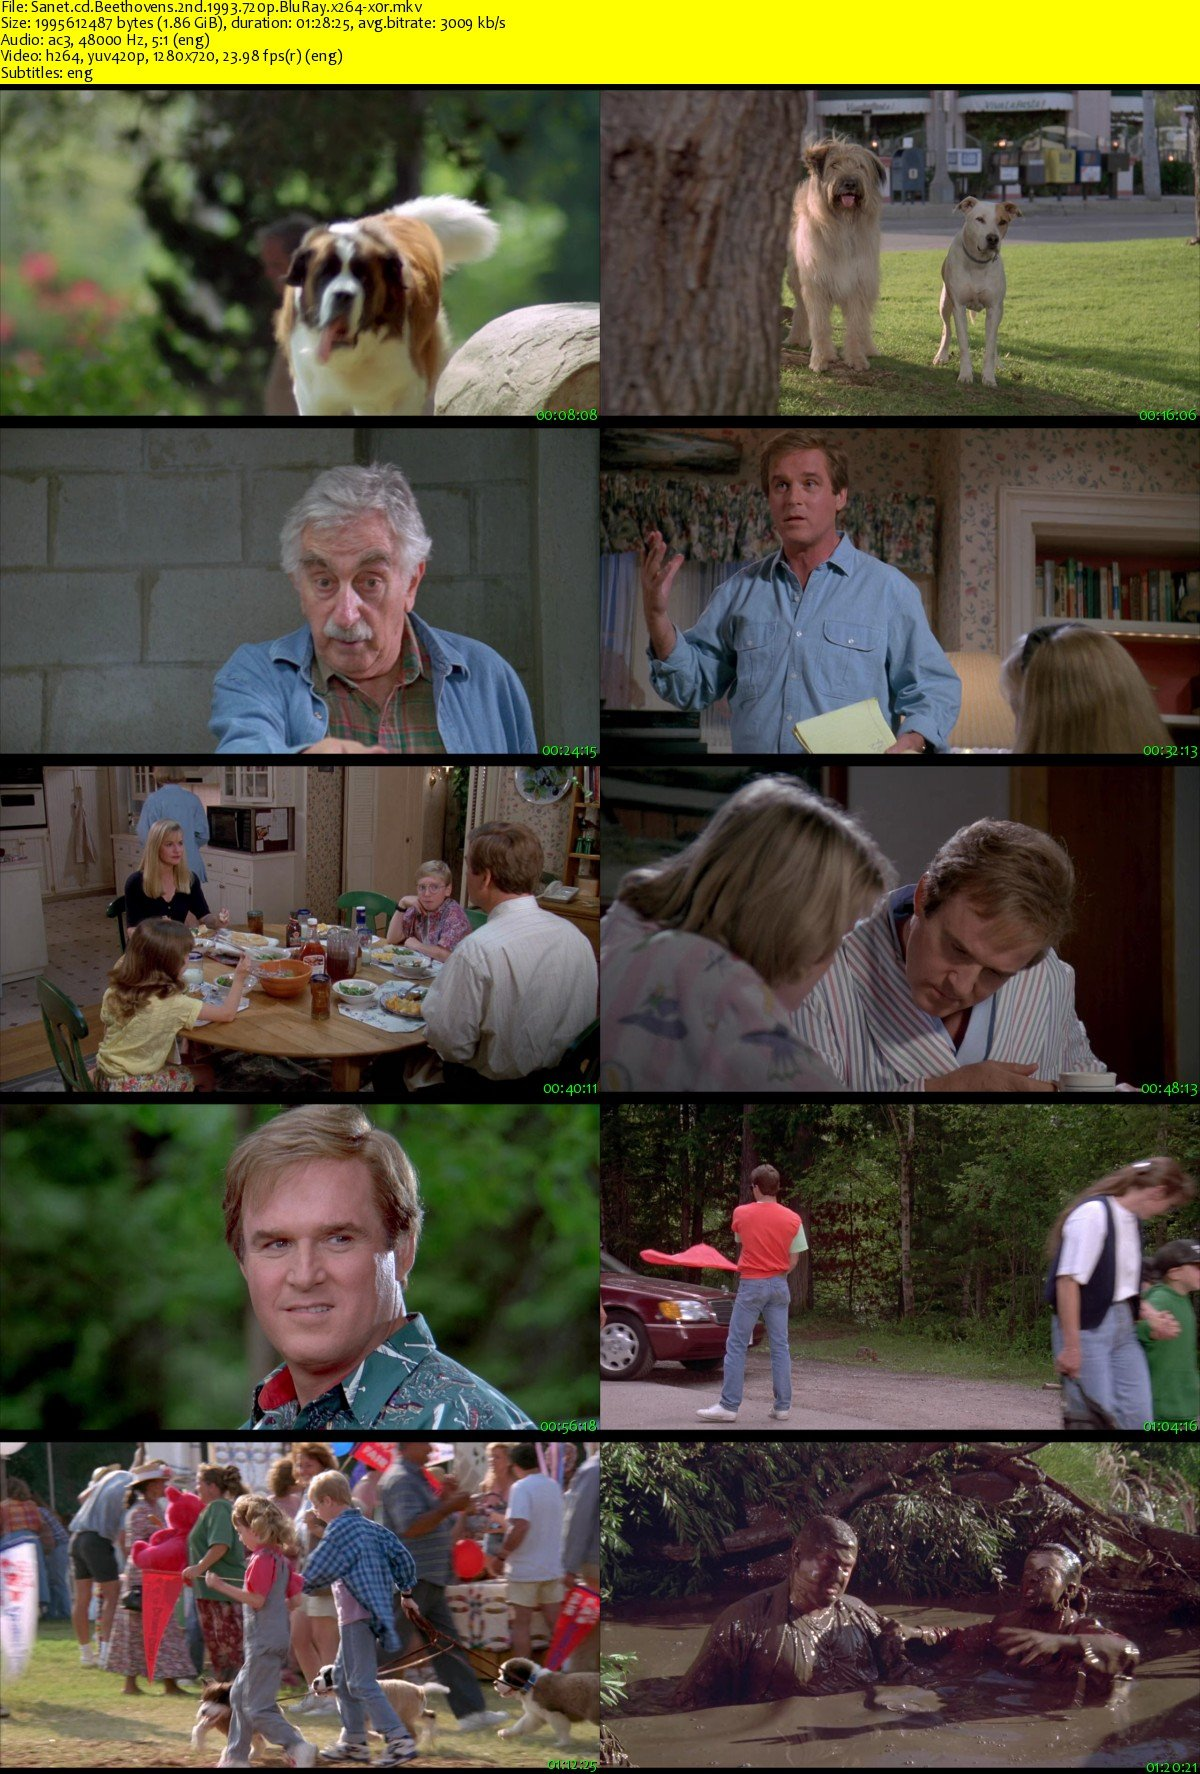 download beethovens 2nd 1993 720p bluray x264x0r